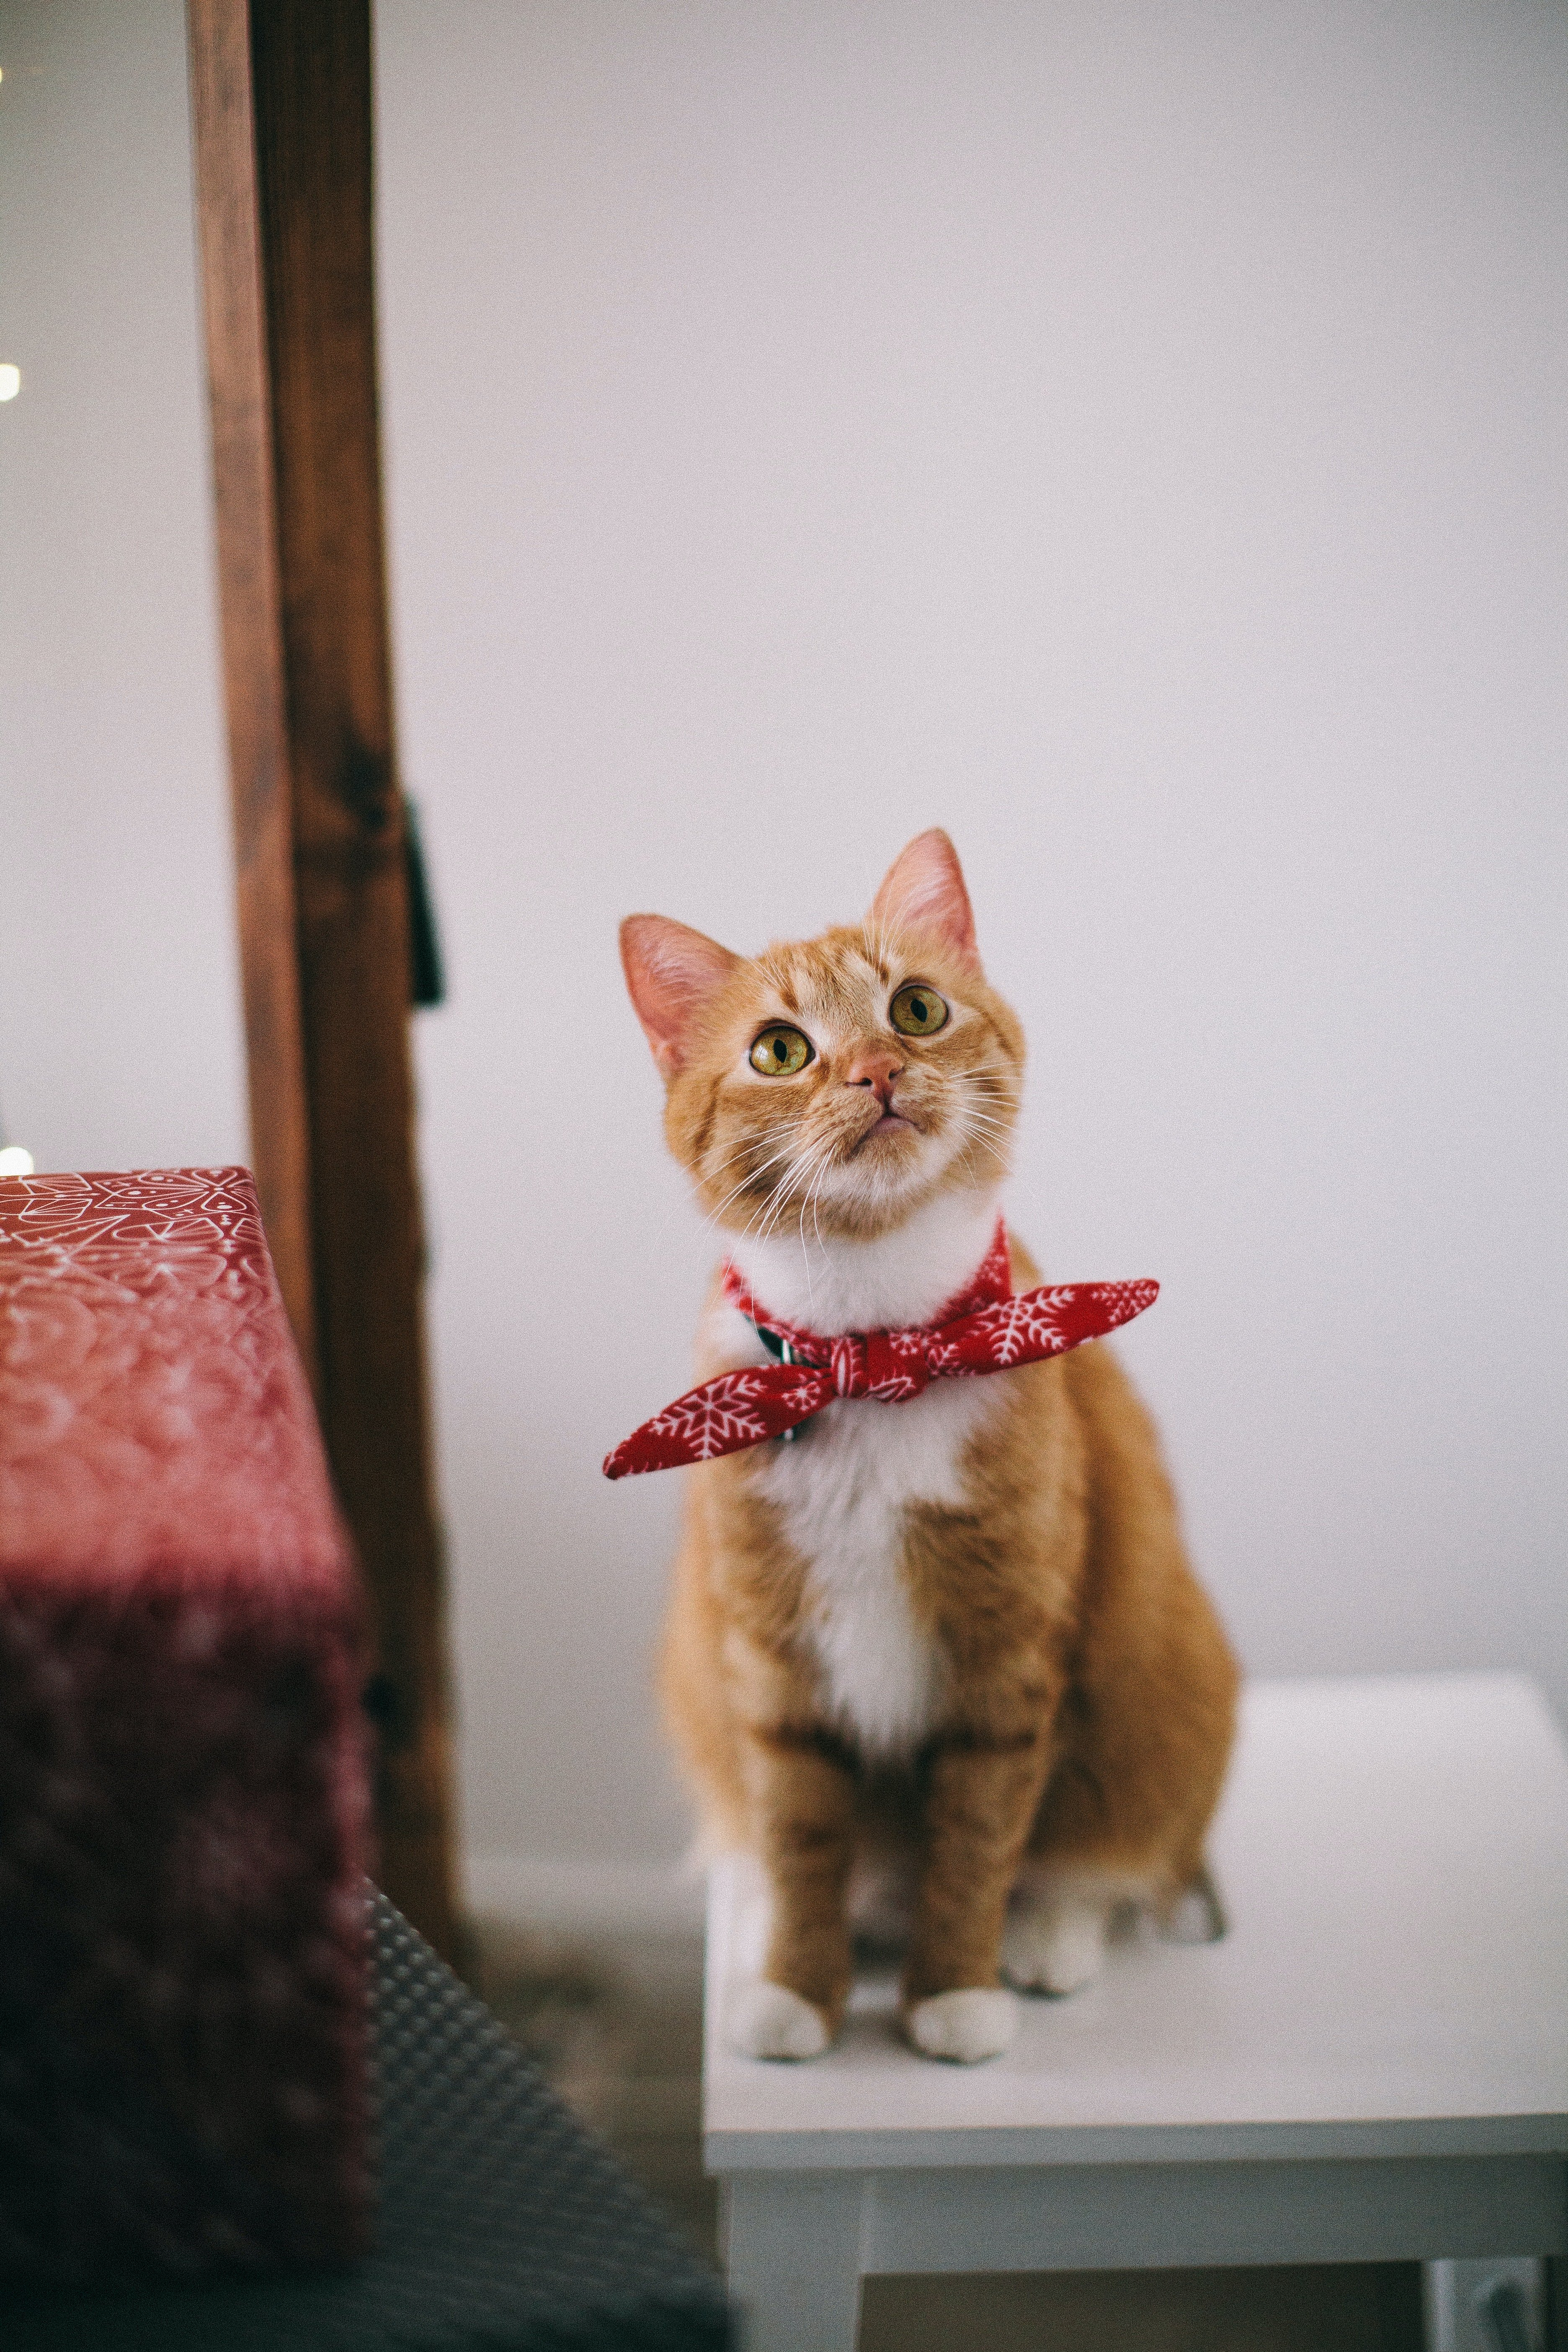 An image of a cat   Photo: Pexels